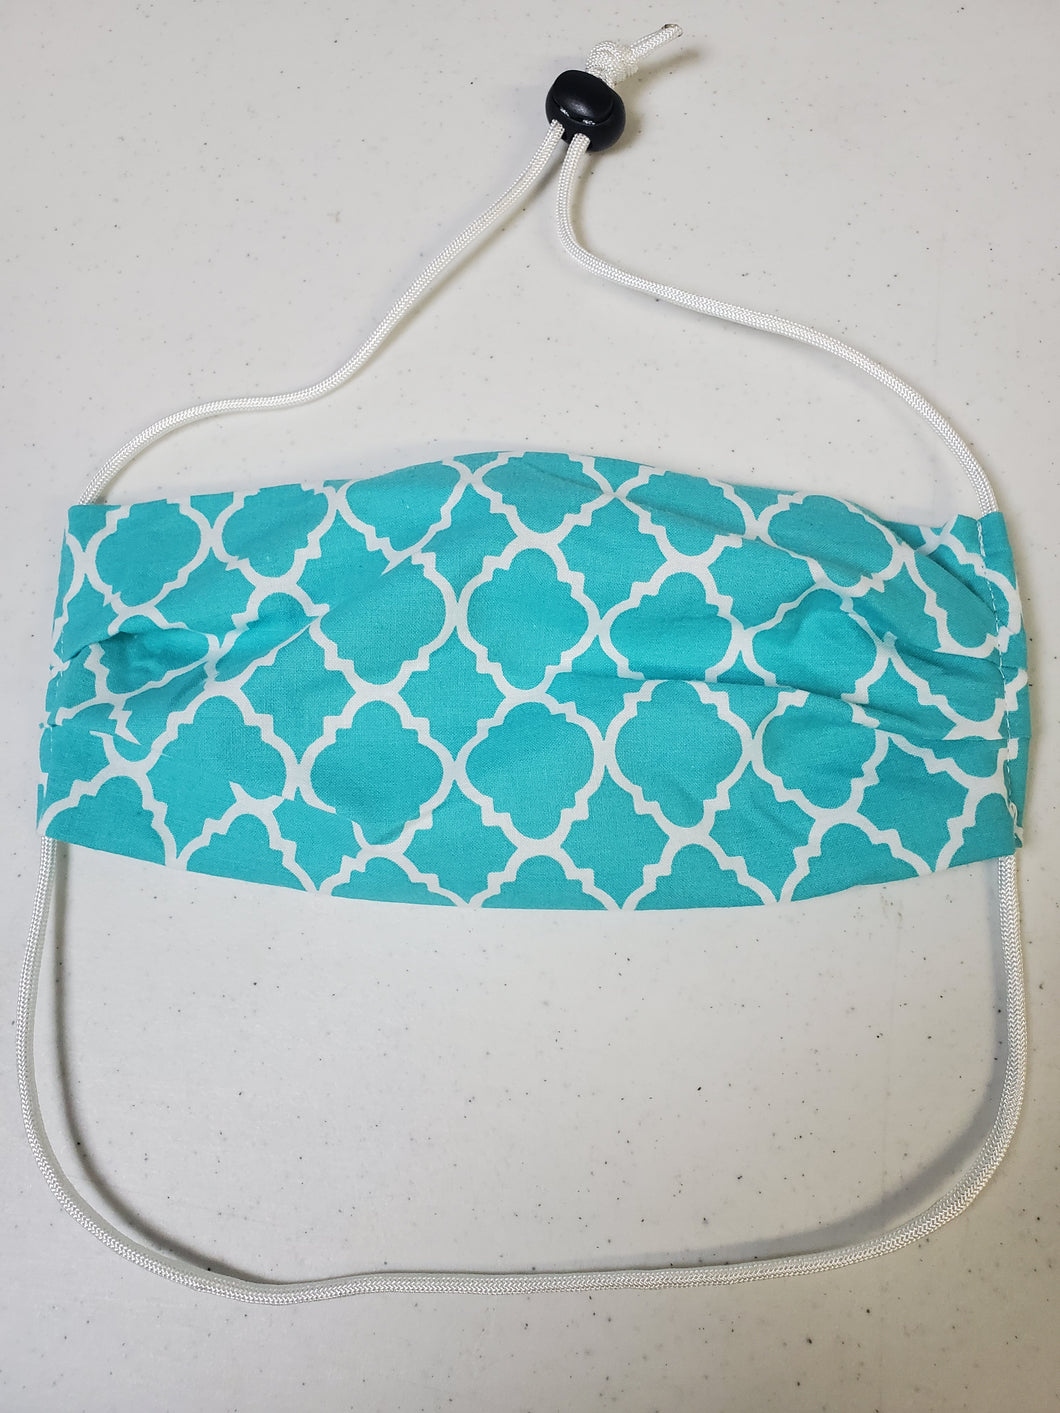 Professionally Hand-Made in USA Cotton Face Mask - Teal Print